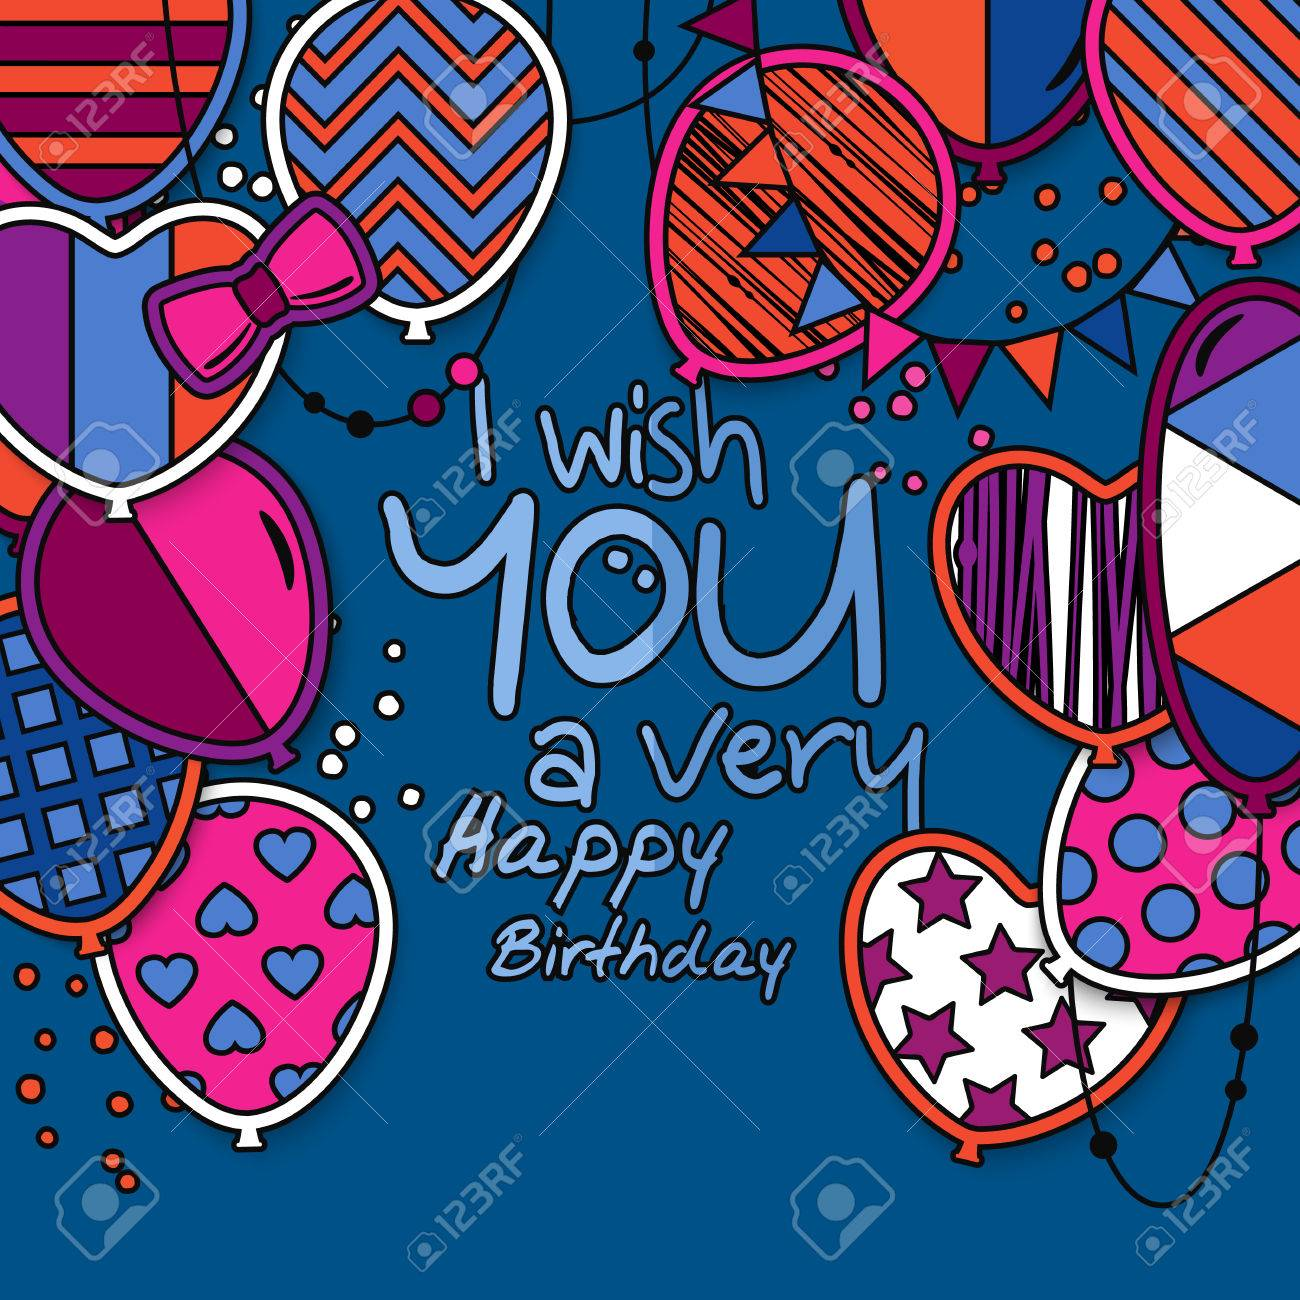 Happy birthday greeting card  Patterned balloons with stars polka